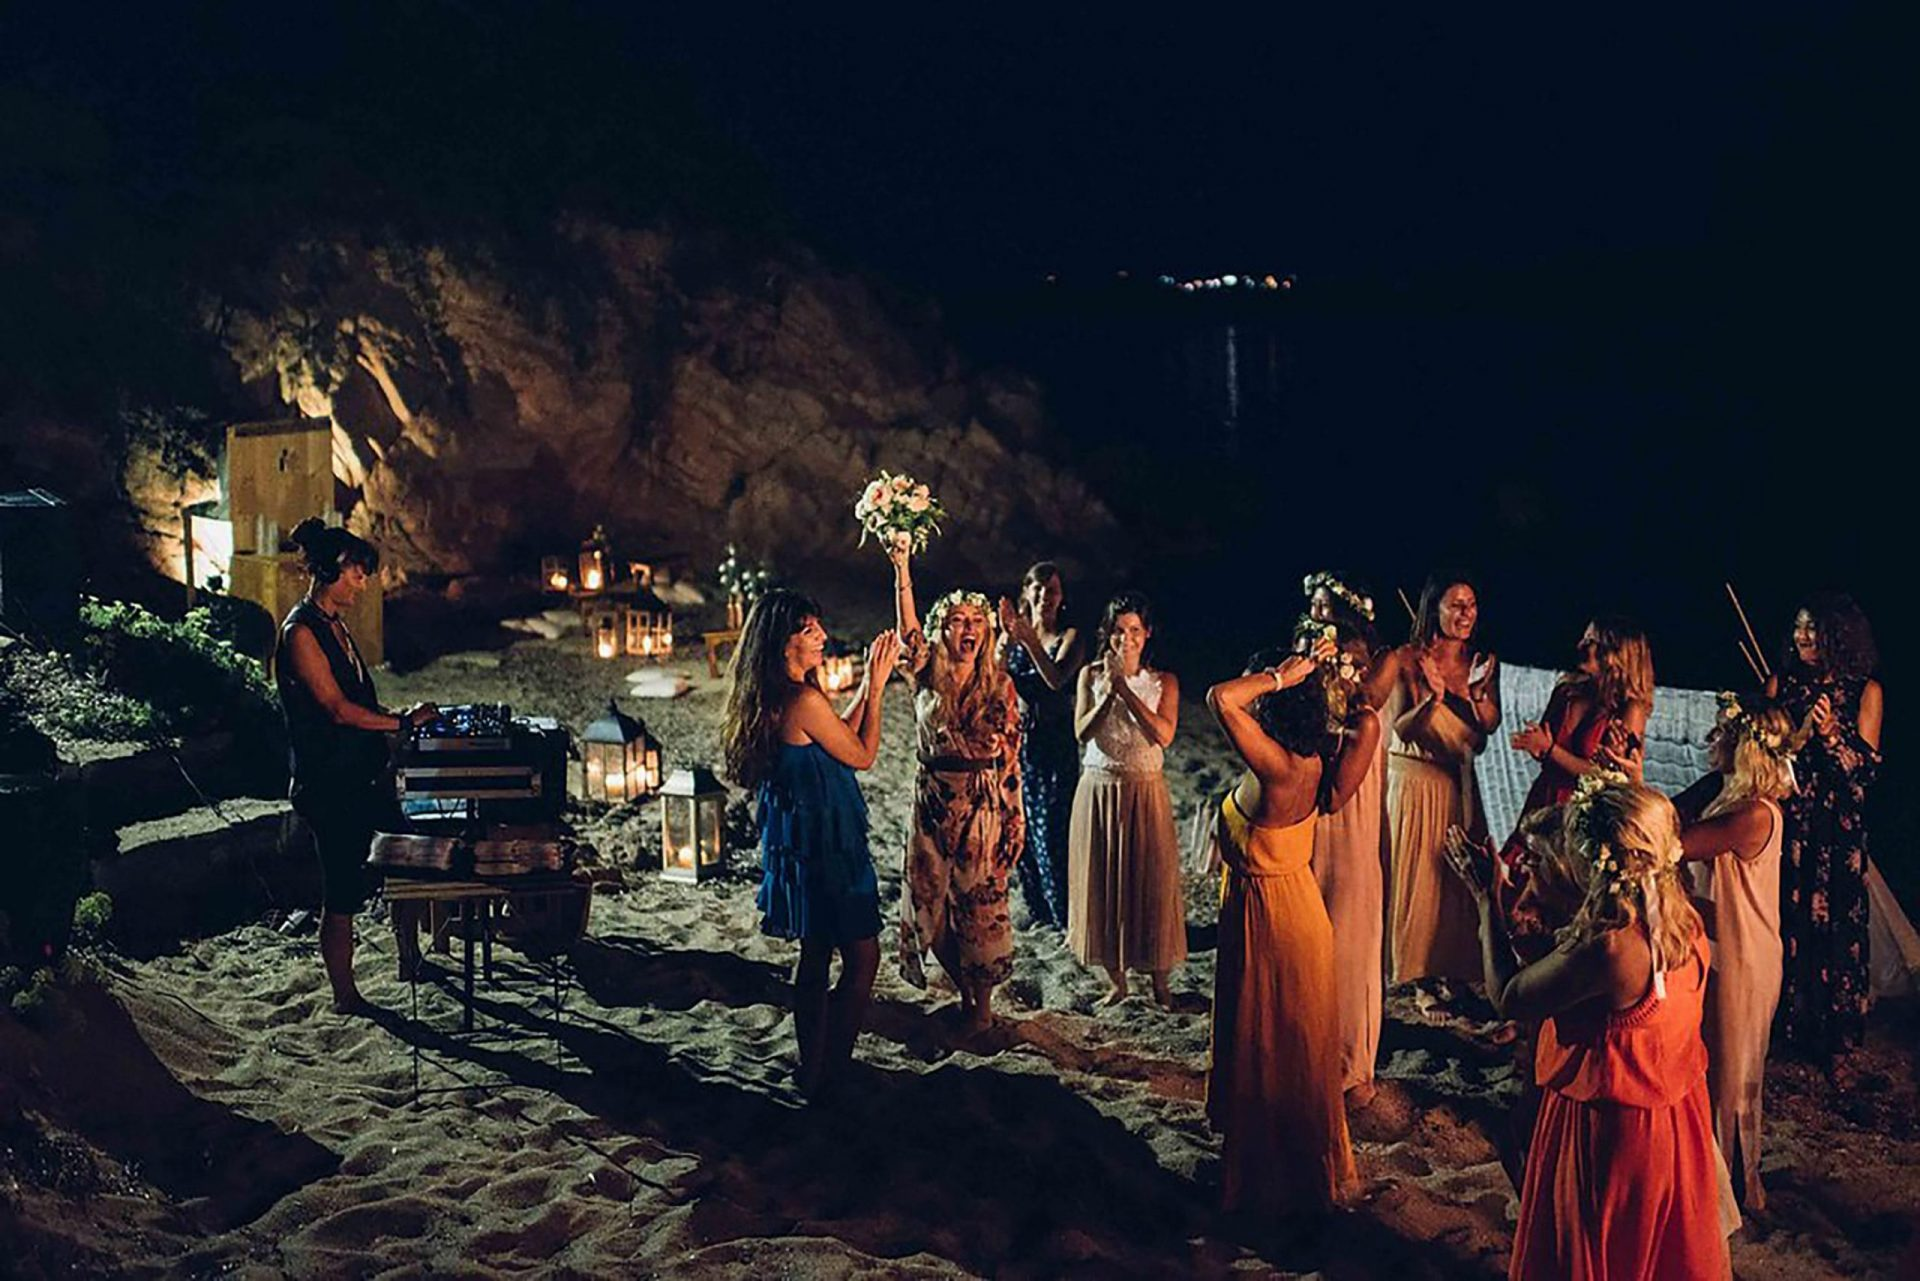 Aurelie and Thomas, wedding party on the beach